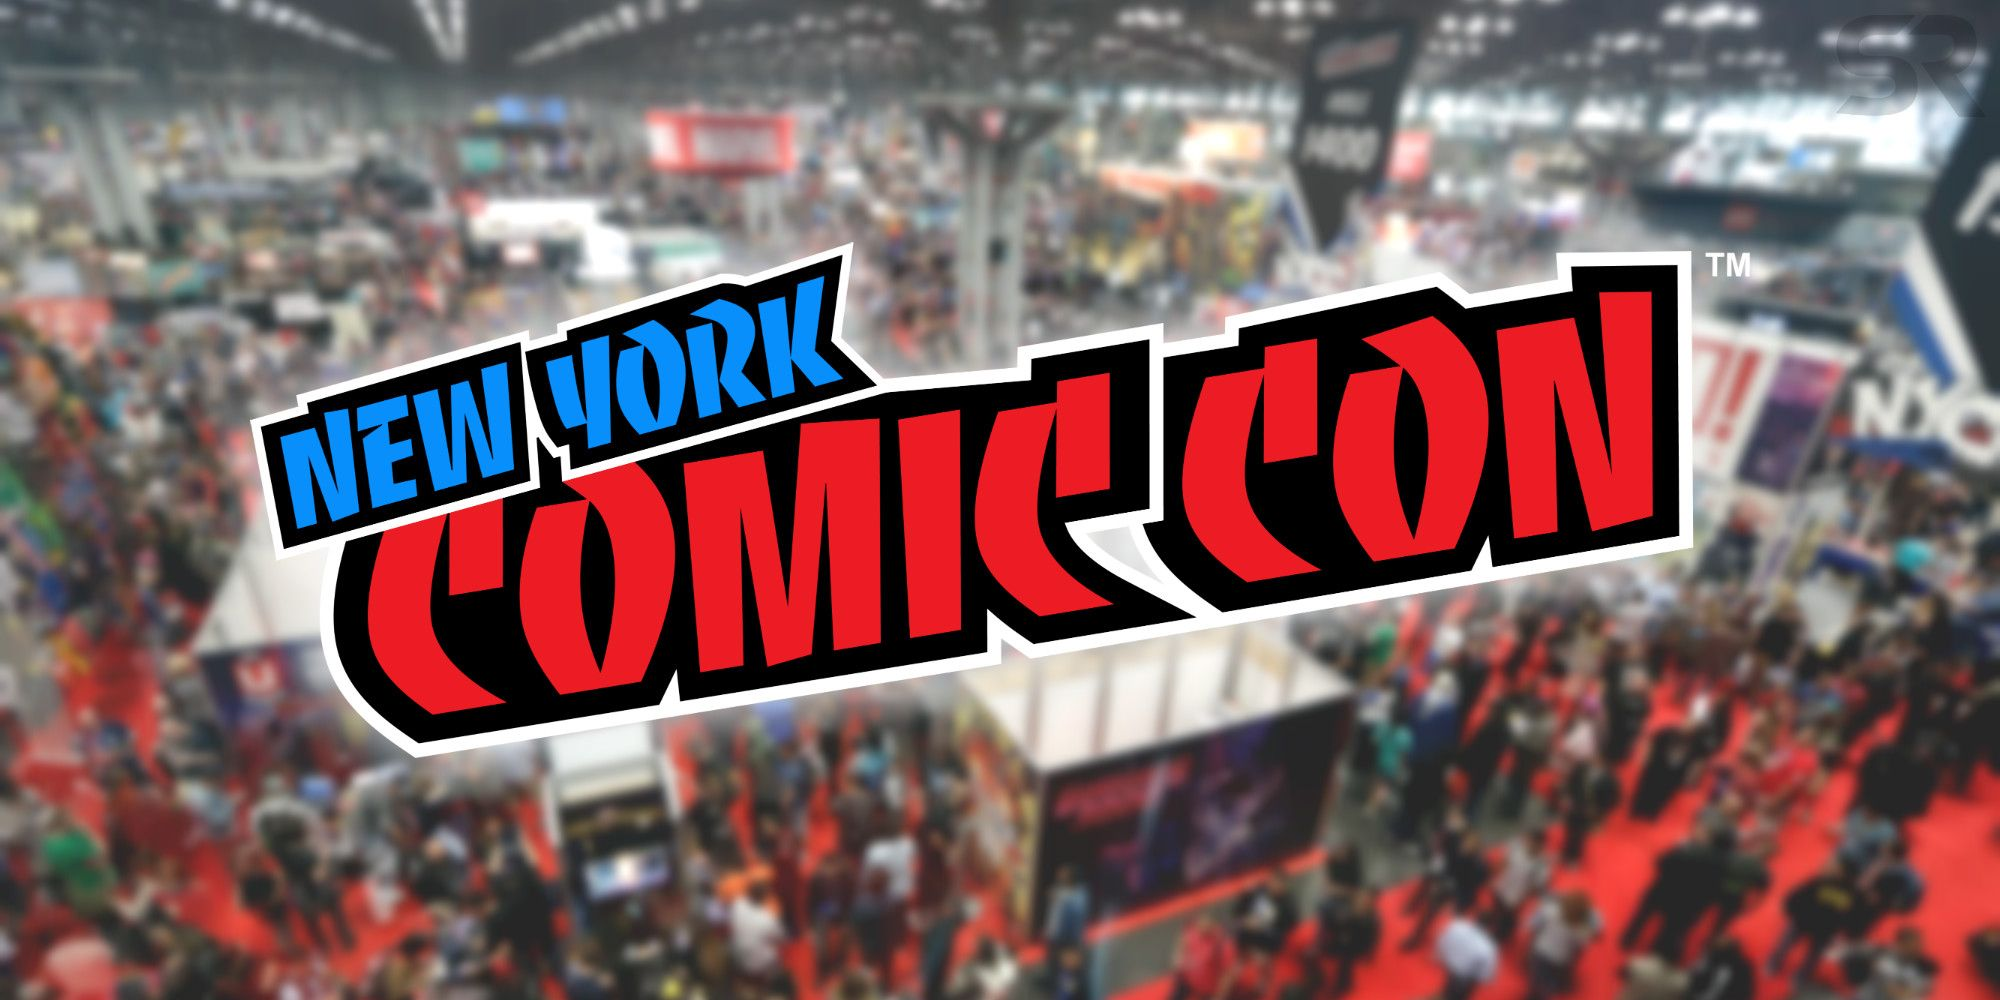 New York Comic Con 2019 Guests New York Comic Con 2019: Celebrity Guest List Confirmed